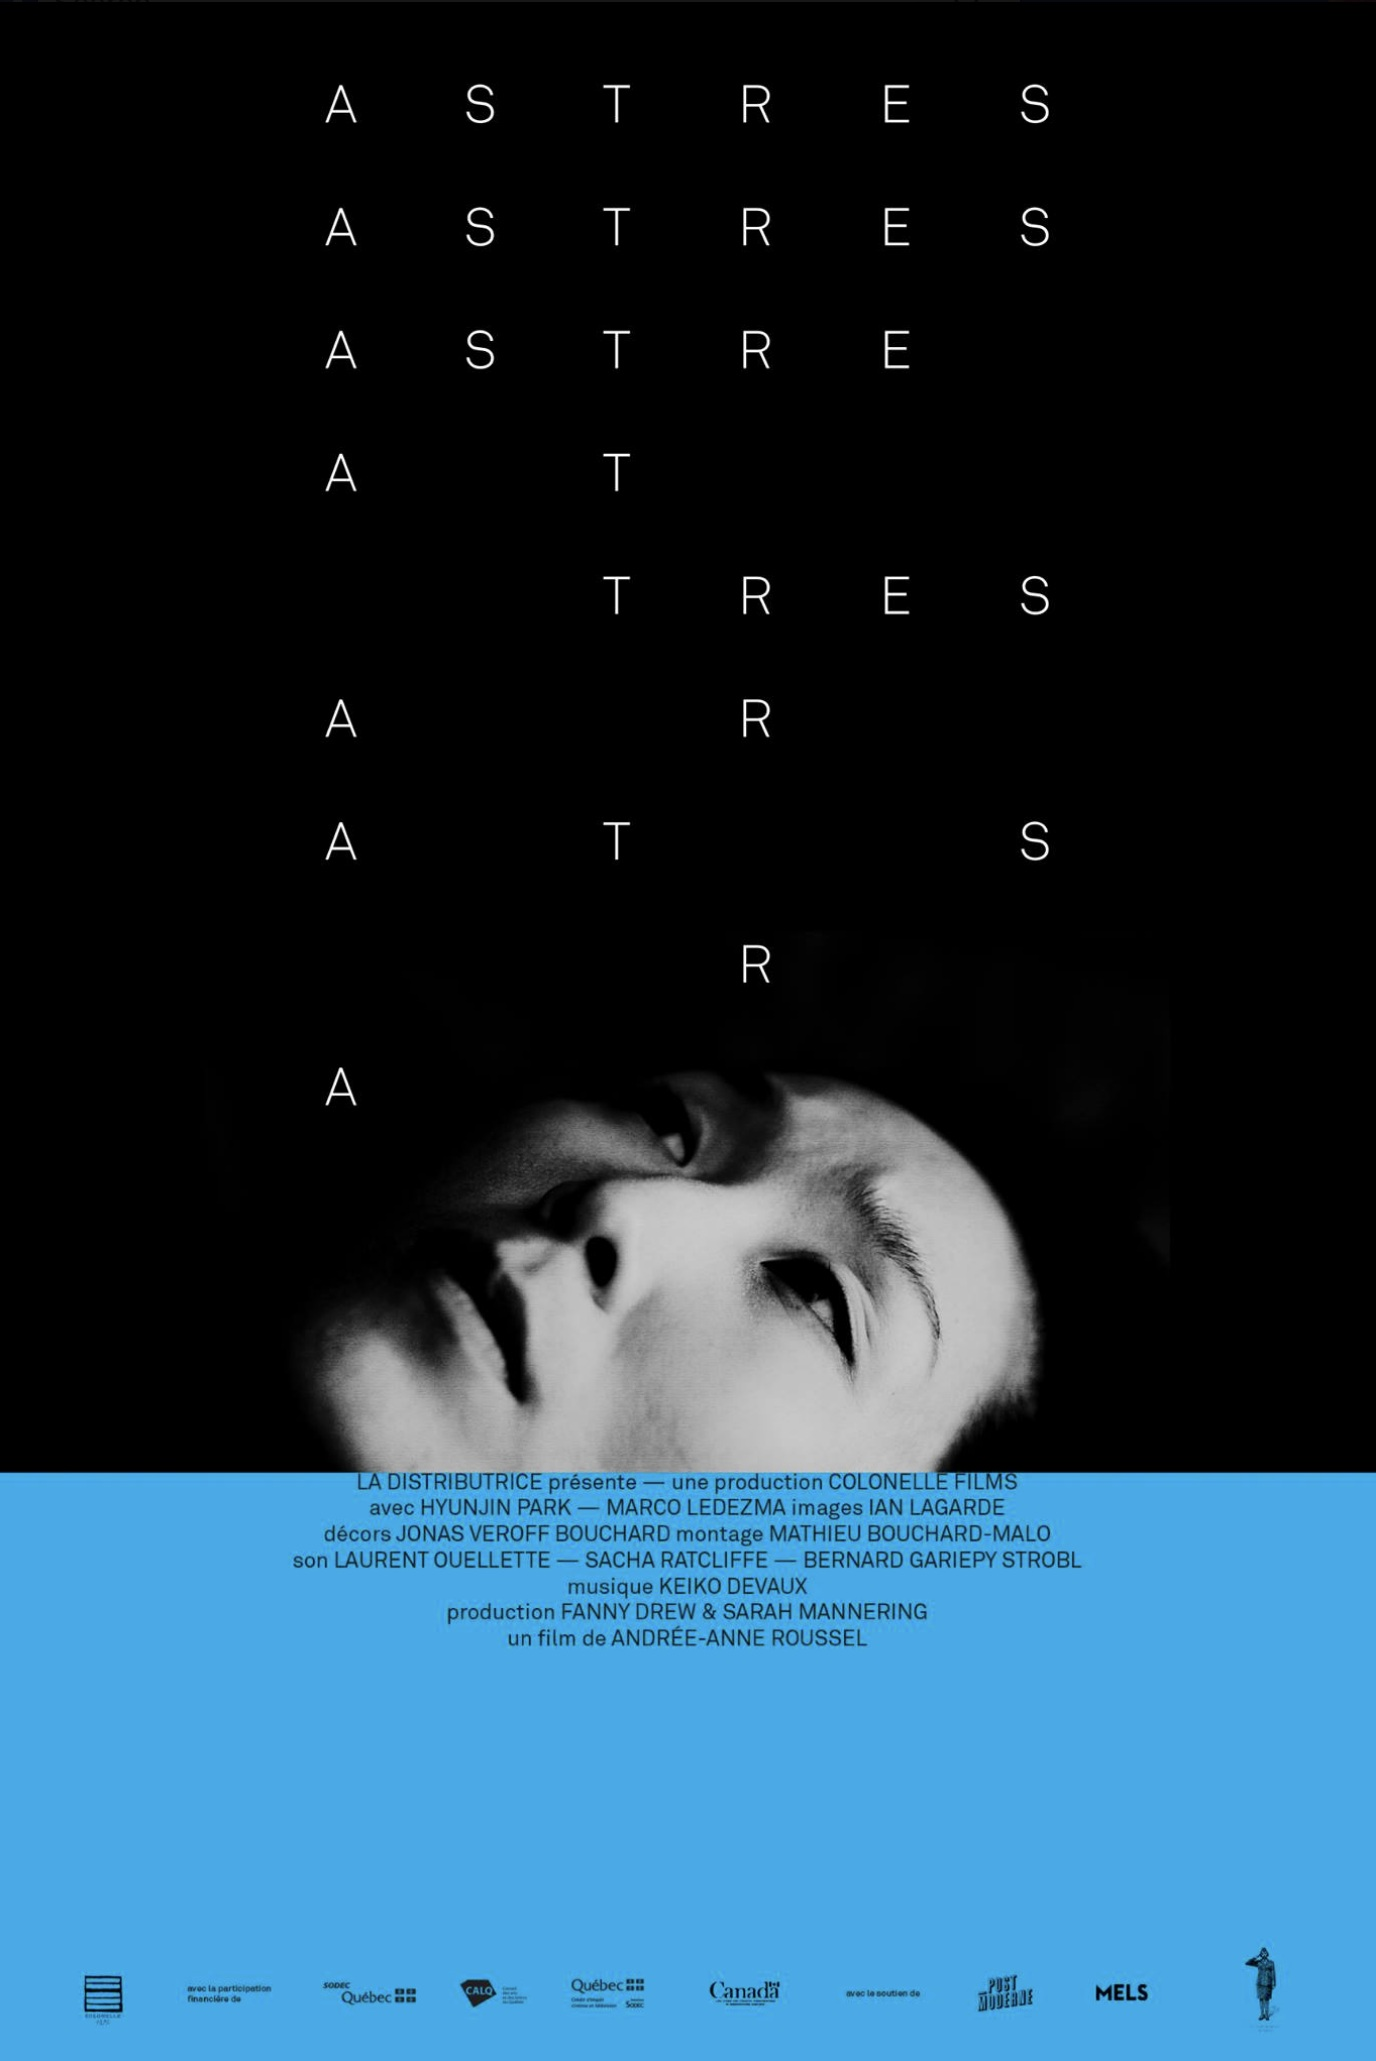 ASTRES - 2019   18m   Live Action Drama ShortA young woman grieves the death of her sister, and makes a cosmic discovery.Directed by Andrée-Anne Roussel.Produced by Colonelle Films.